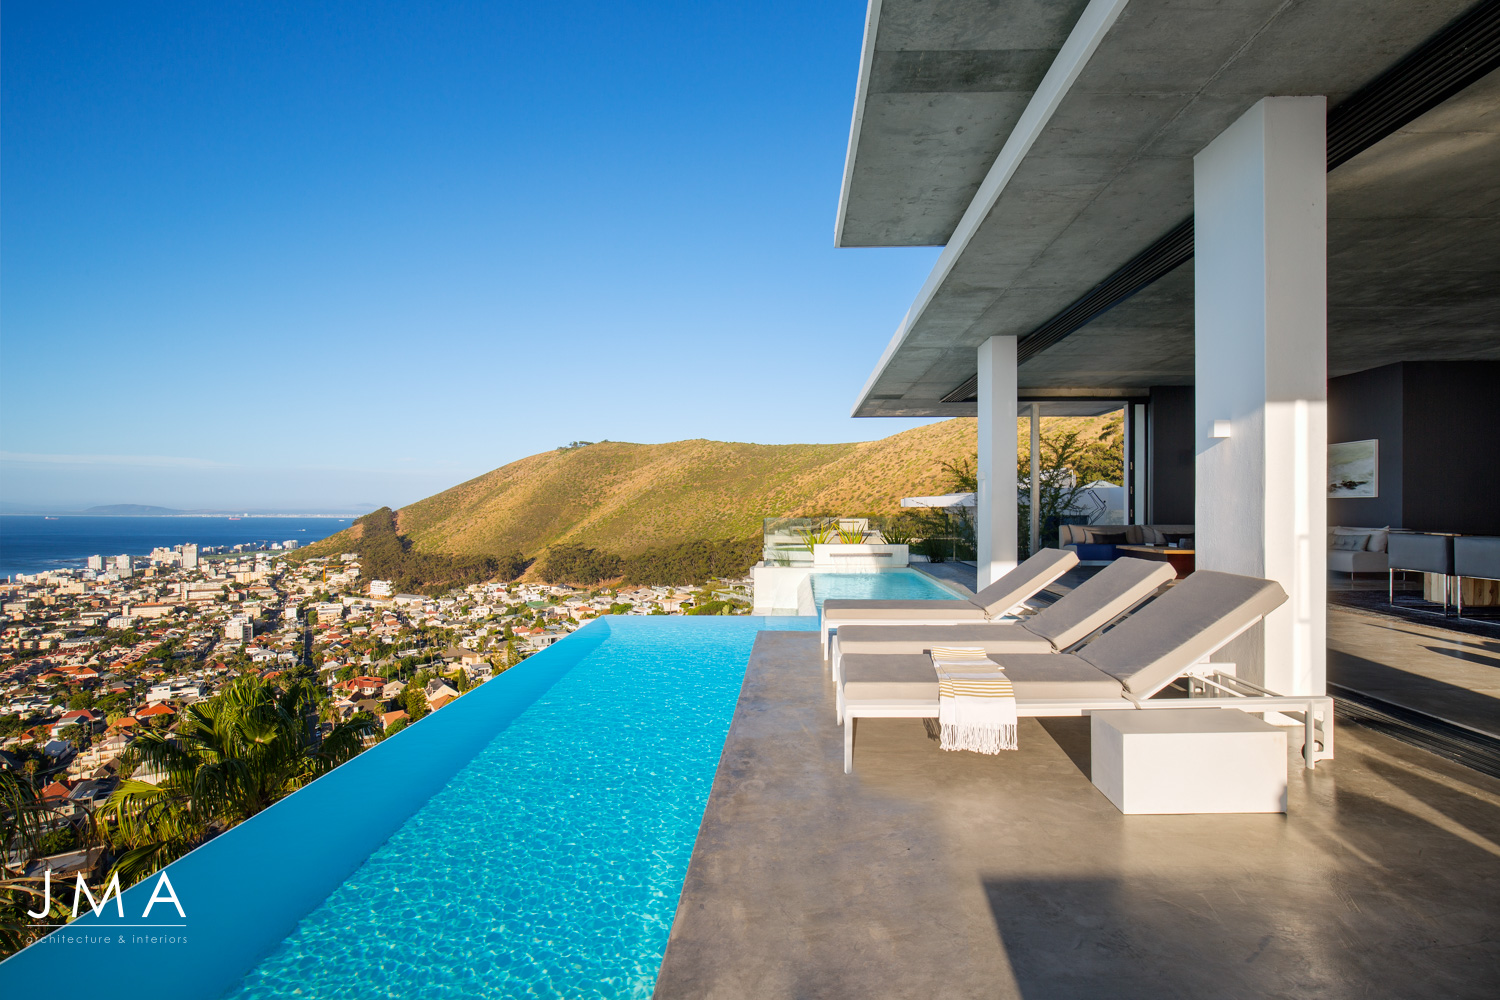 Fresnaye Pool Penthouse external pool view - architectural design by Jenny Mills Architects